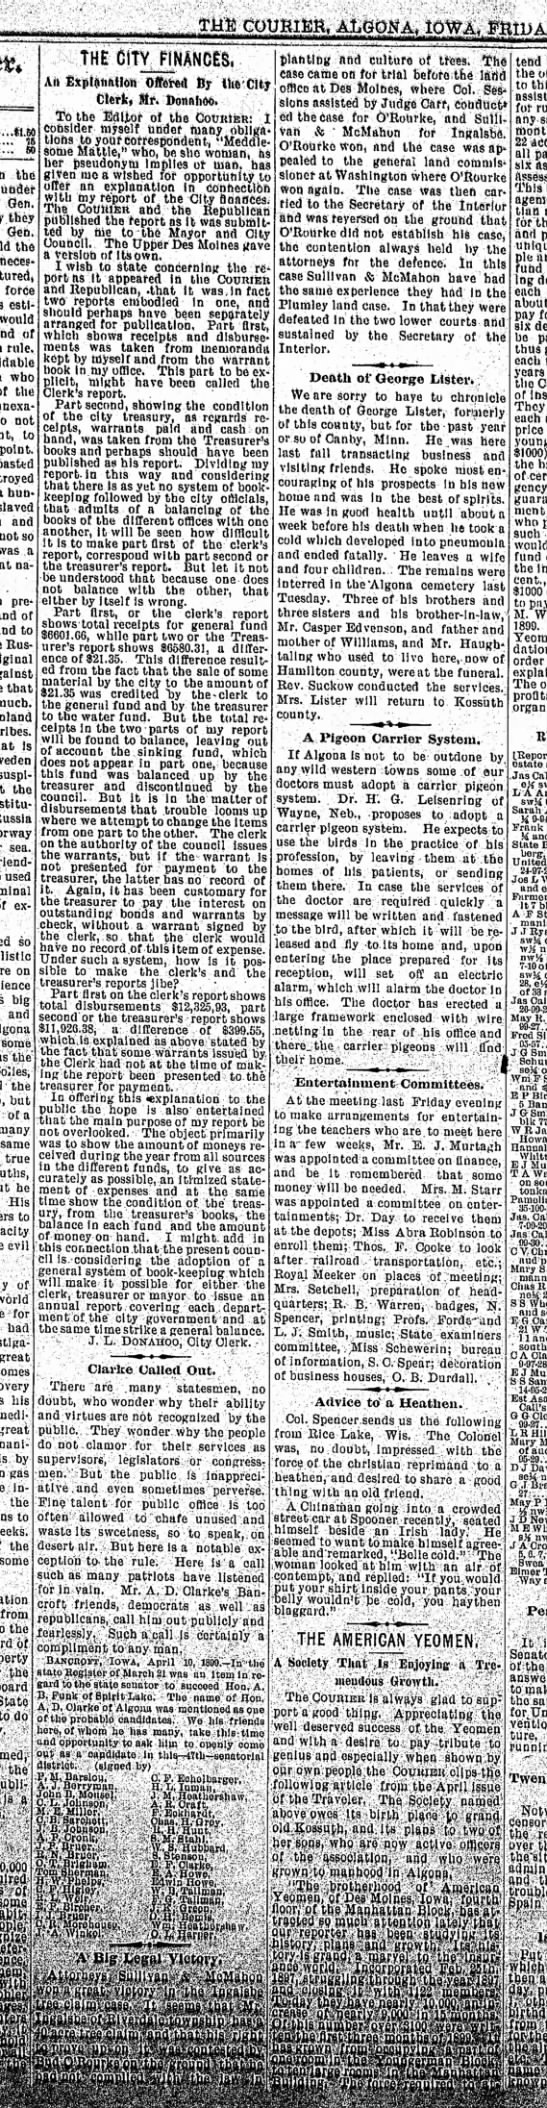 21 april 1899 algona courier